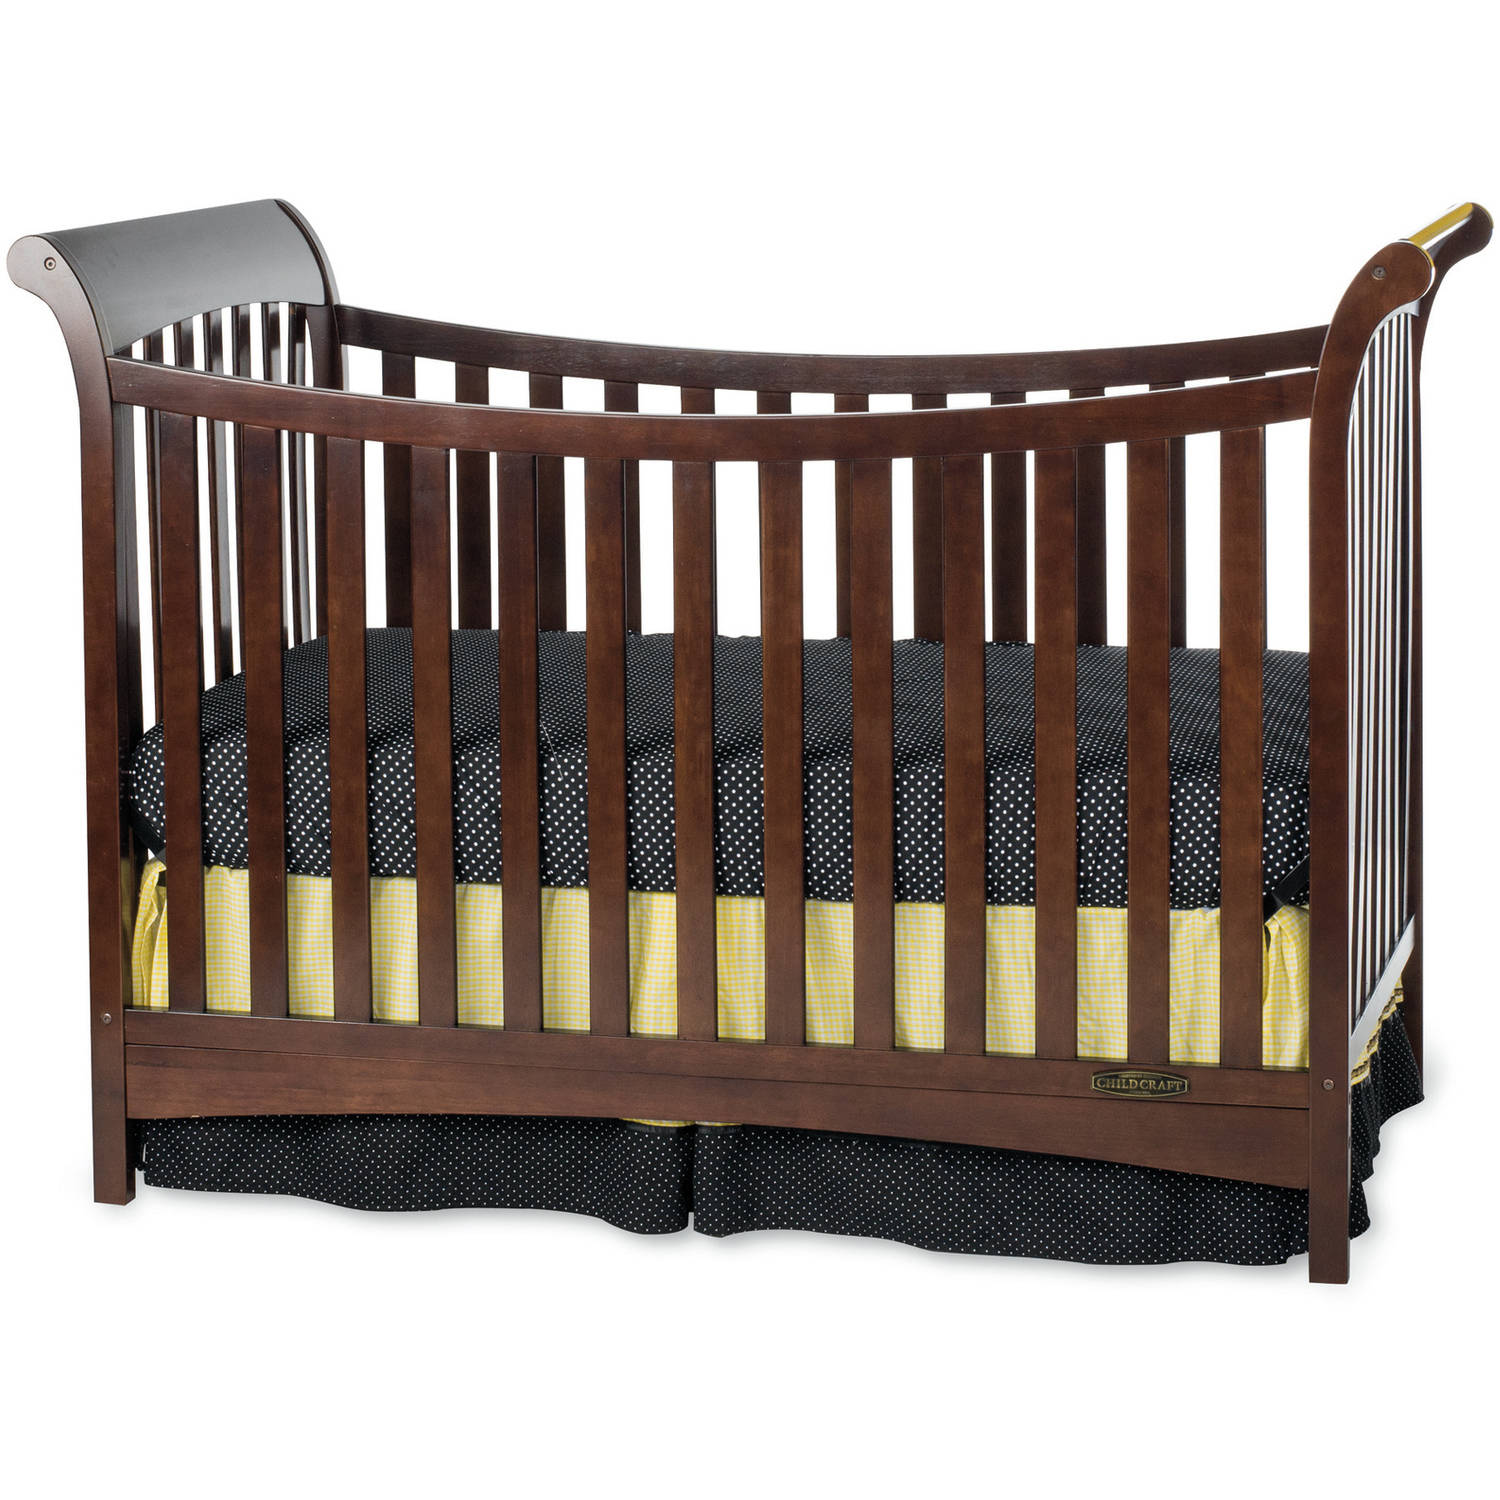 Child Craft Ashton 3-in-1 Traditional Crib, Select Cherry